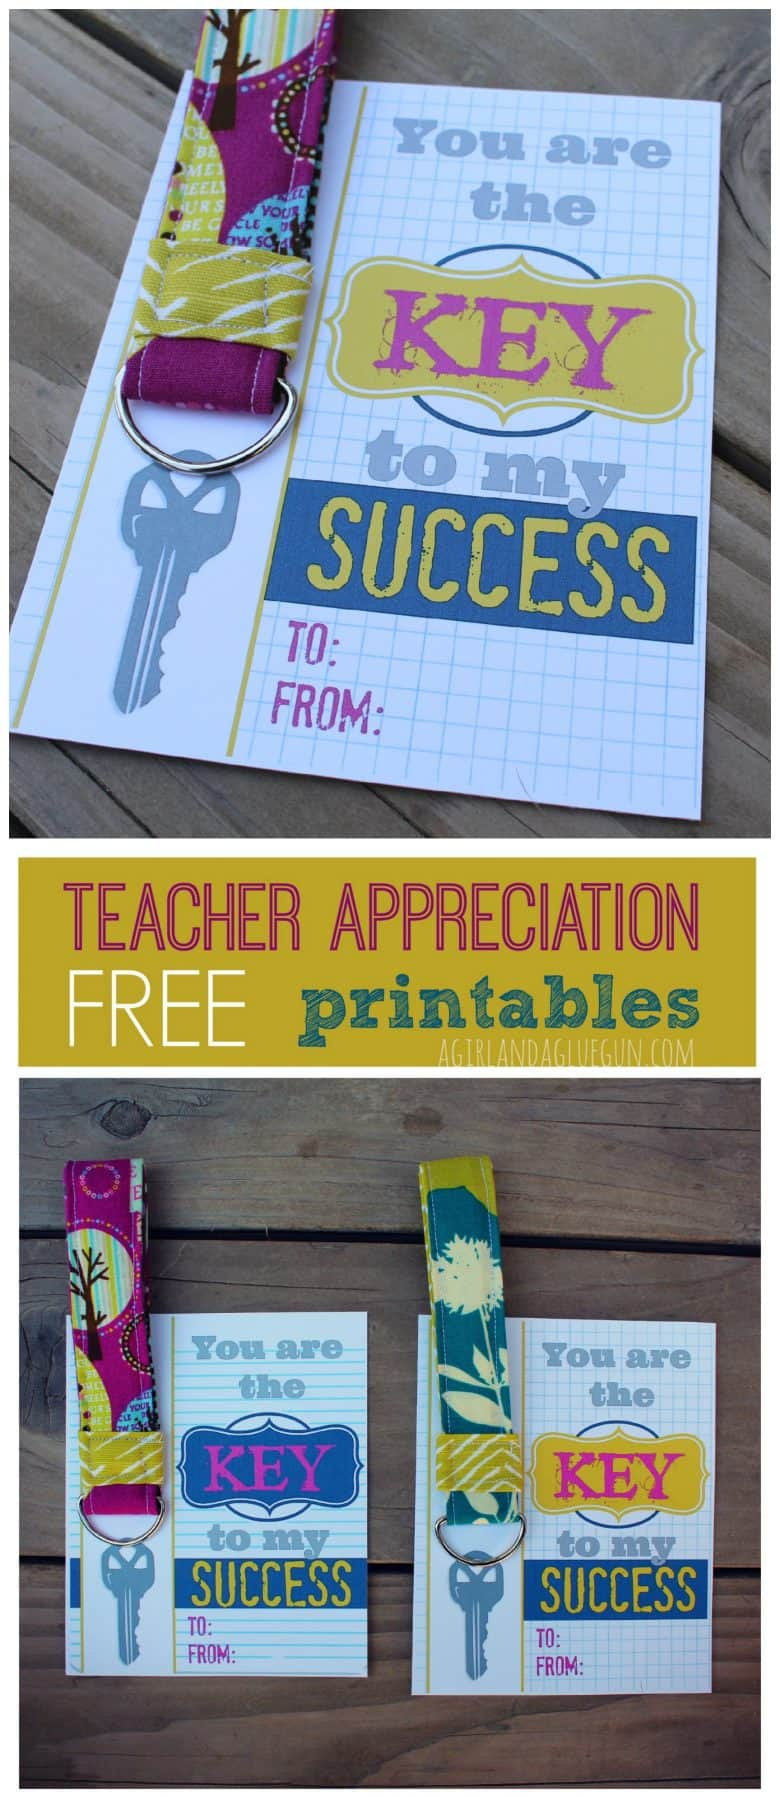 Key to my success free teacher printables with keychain What is a nice thank you gift